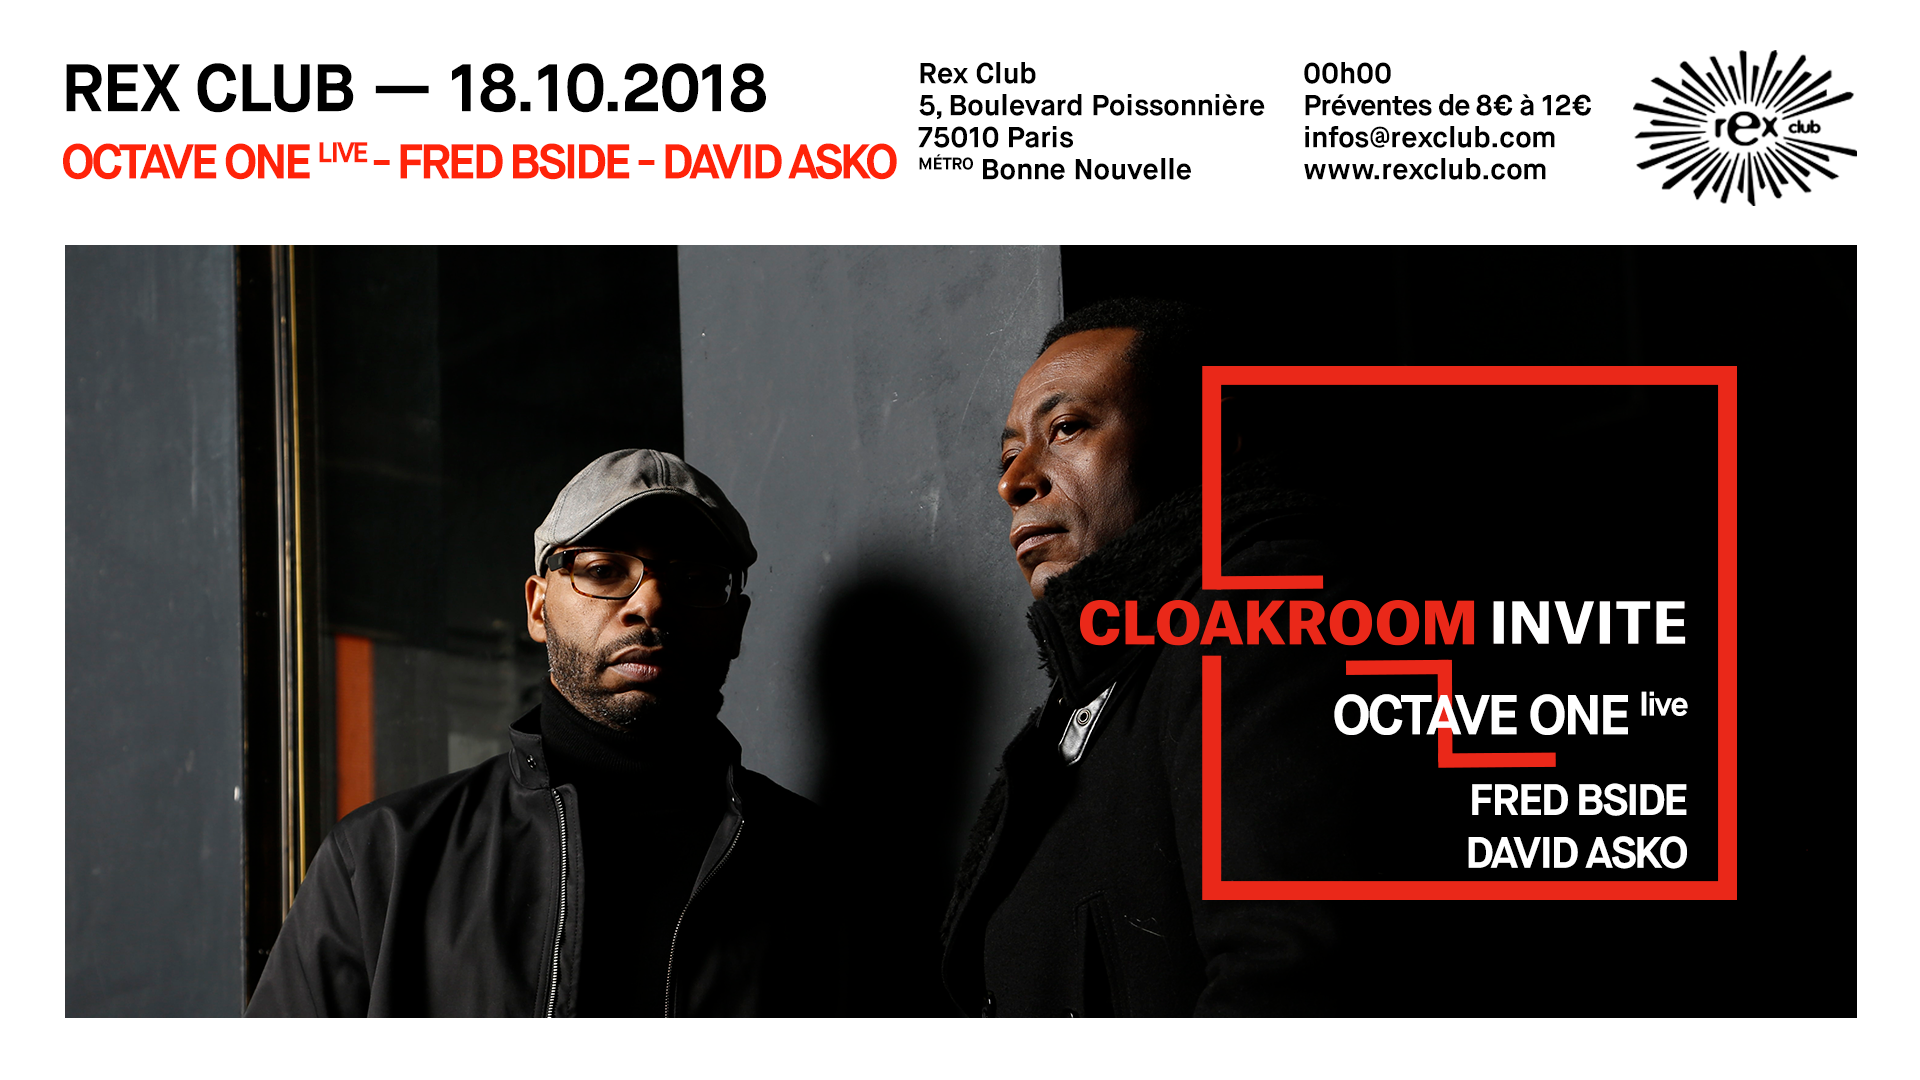 20181018_cloakroom_octave_one_facebook_event_banner_1920x1080